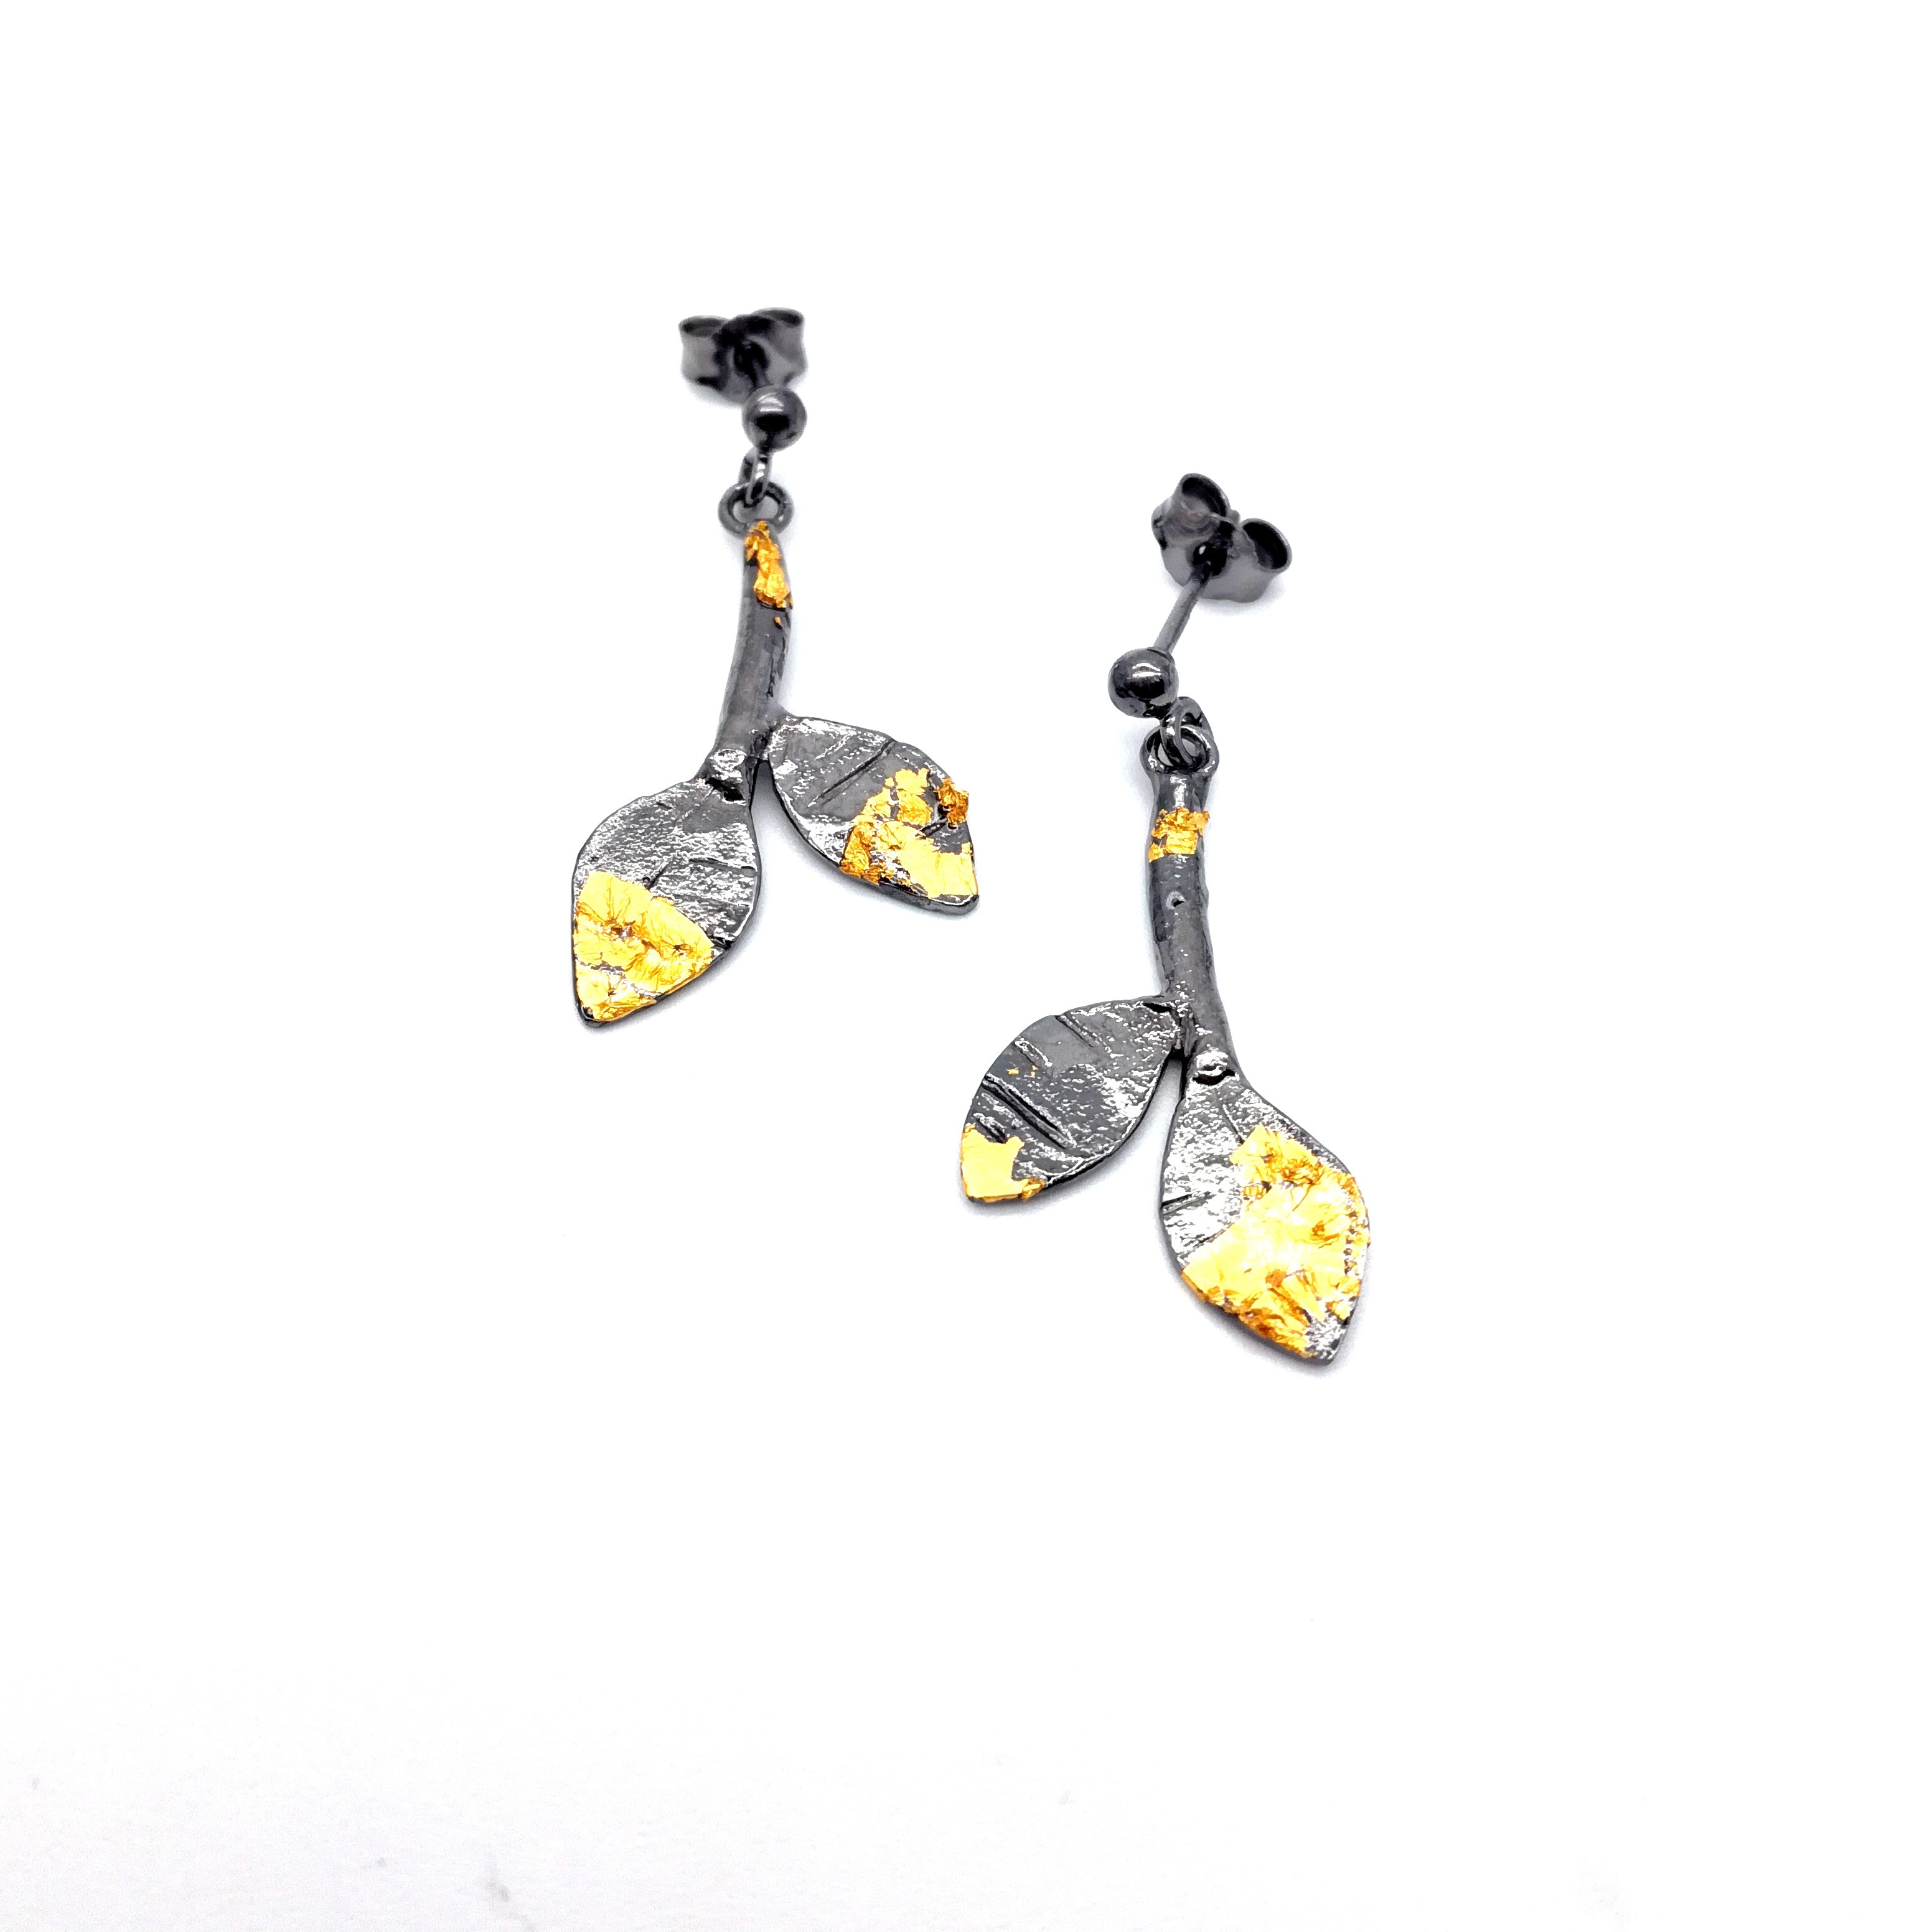 Silver earrings 925 black rhodium with gold leaf 22K